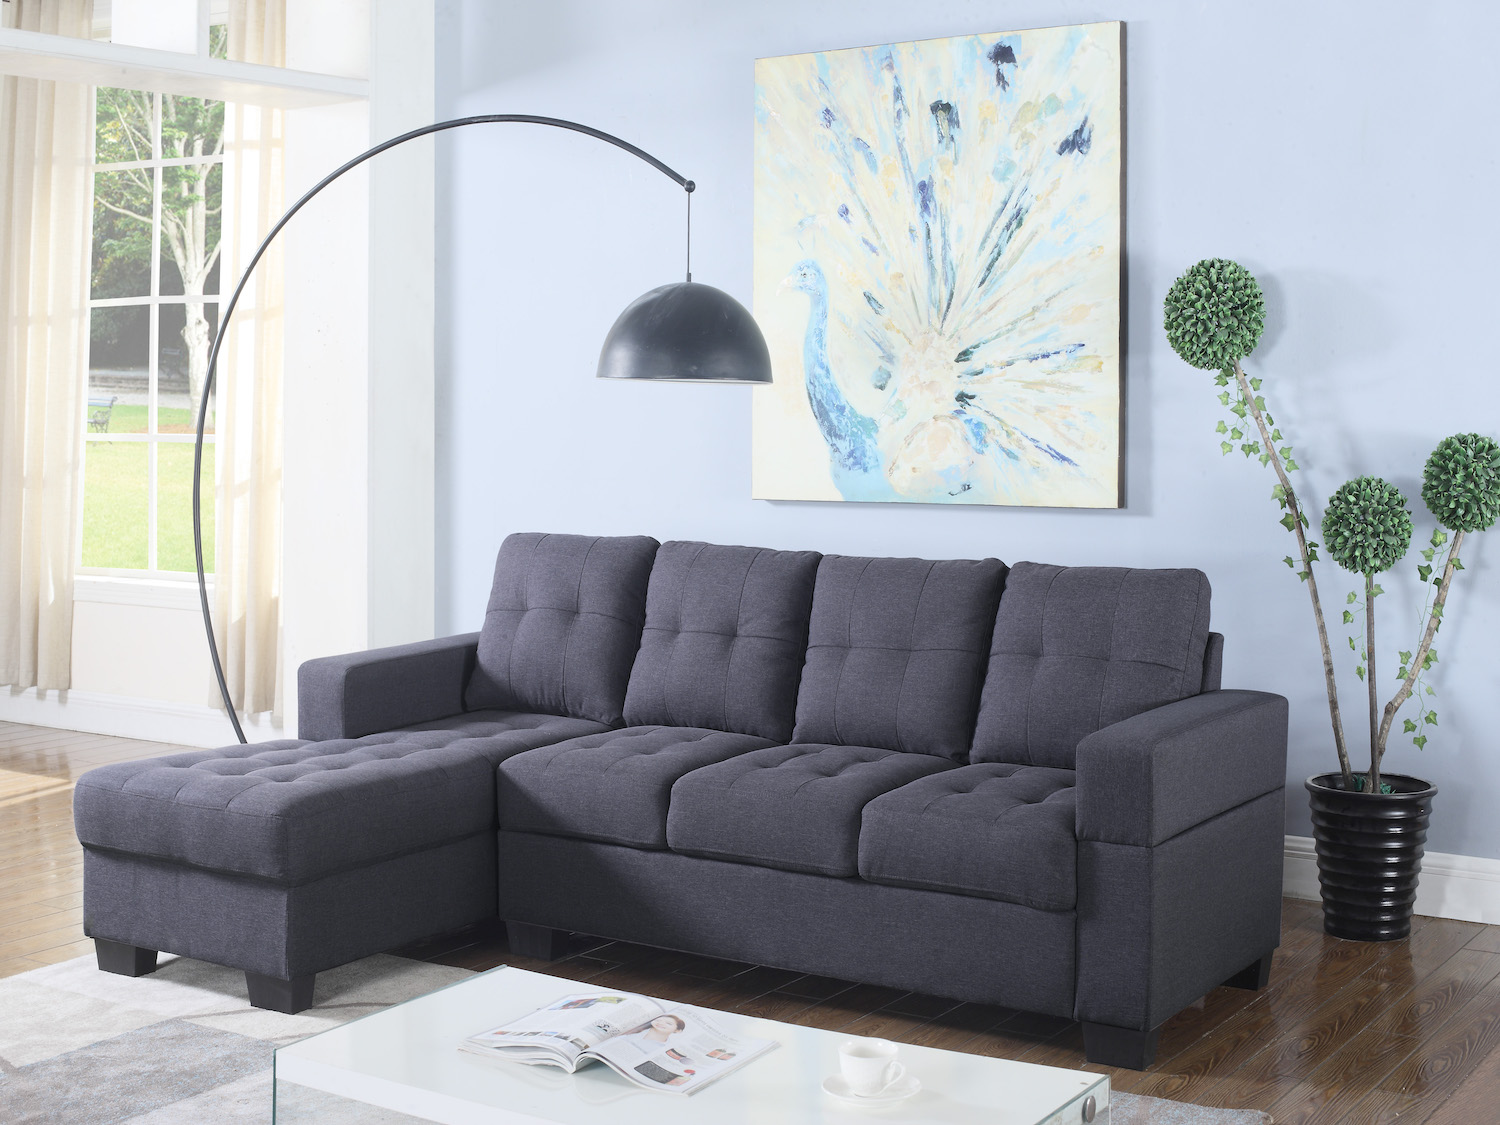 Sectional, 6212, Sectionals by Midha Furniture to Brampton, Mississauga, Etobicoke, Toronto, Scraborough, Caledon, Oakville, Markham, Ajax, Pickering, Oshawa, Richmondhill, Kitchener, Hamilton and GTA area